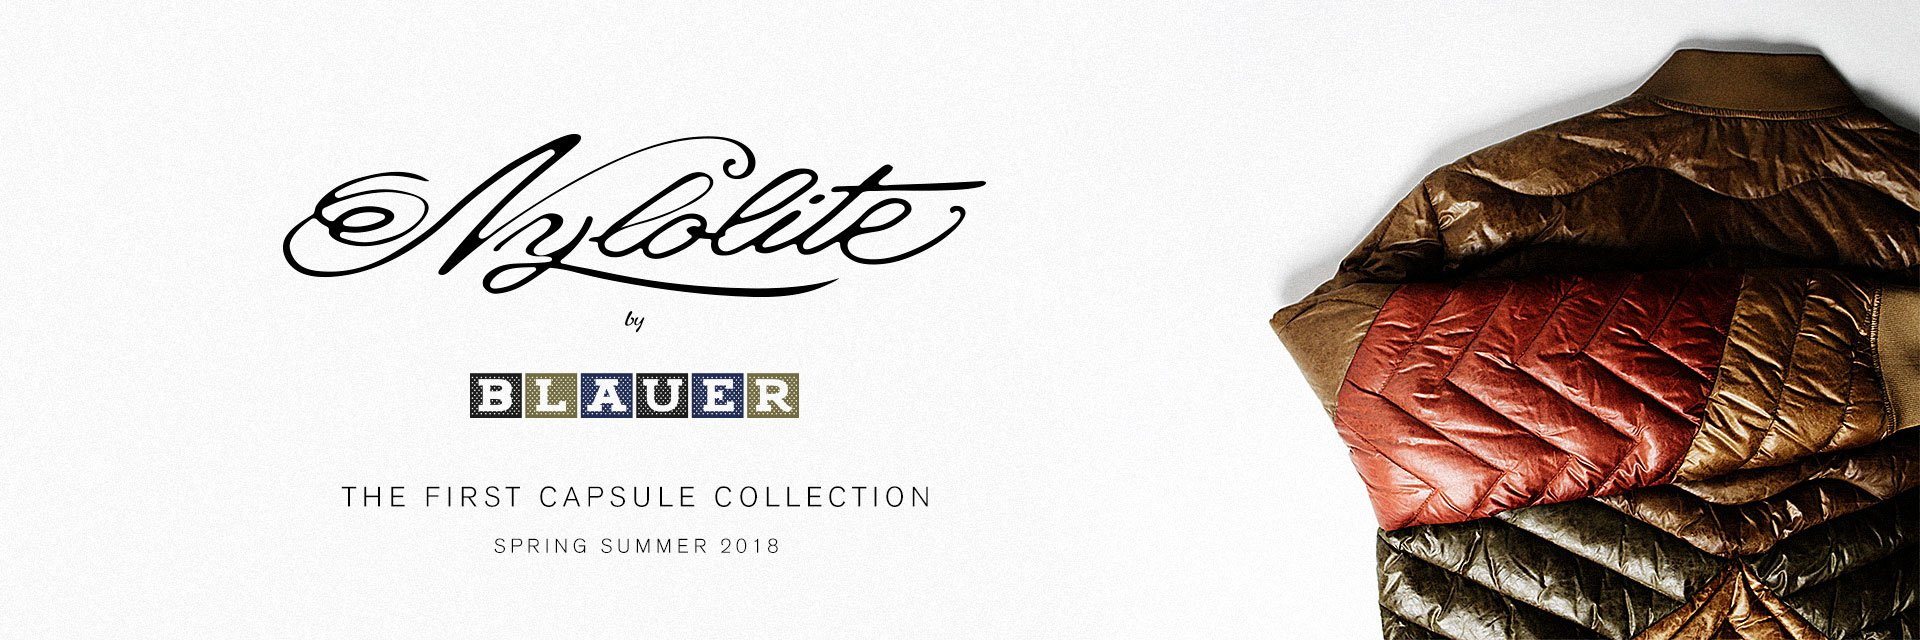 What was past is reinvented. What was hidden is revealed. <strong>Our first capsule collection Nylolite</strong> is born to break stereotypes and open up a new path in the glorious story of Blauer.<br />The seven jackets &ndash; four for men, three for women &ndash; are fashioned with artisanal care and garment dyed so that each piece displays unique and unrepeatable nuances, just like the person who will wear it. <br /><strong>Nyolite</strong> is the result of the meticulous study of the inners of military jackets. <br />Its characteristic <strong>quilted fabric, light and soft, make the garments suitable for the summer as well as for the spring and the autumn</strong>. <br />A sign that American blood flows in the seams of our jackets and that our pioneer spirit comes from afar.